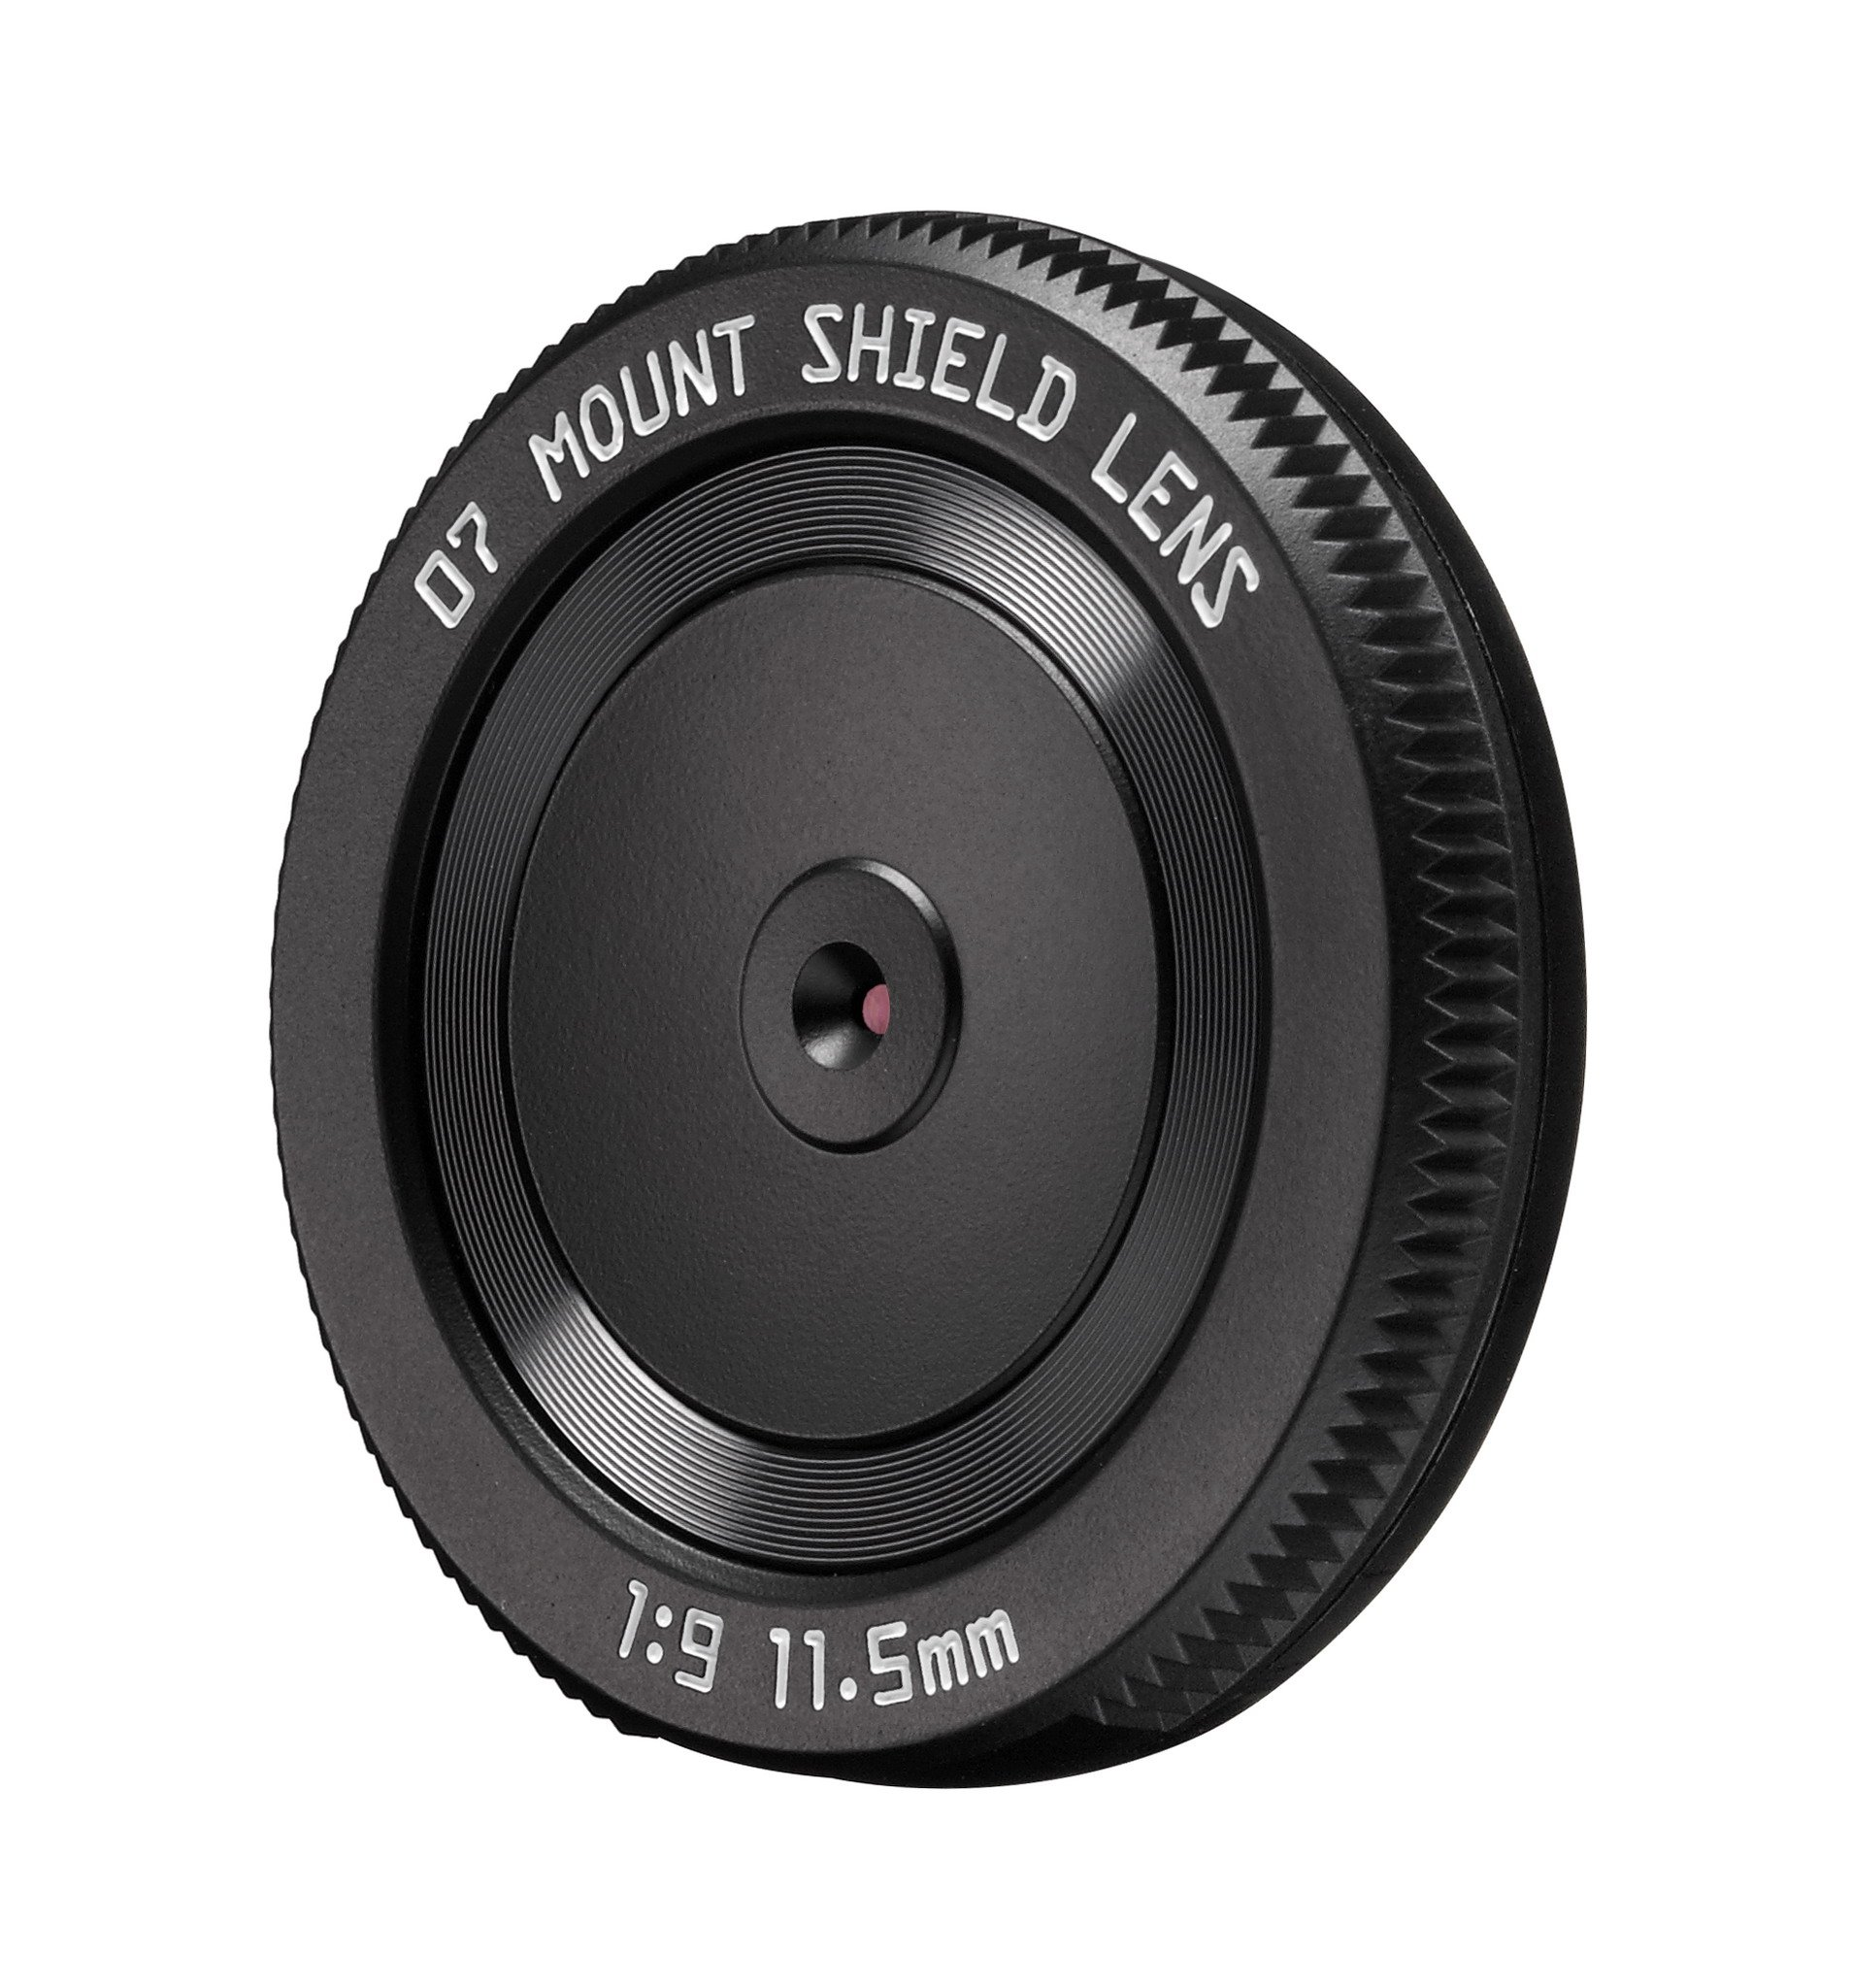 Pentax 07 11.5mm f/9 Mount Shield Lens (53mm - 35mm equivalent), for Q-Series Cameras